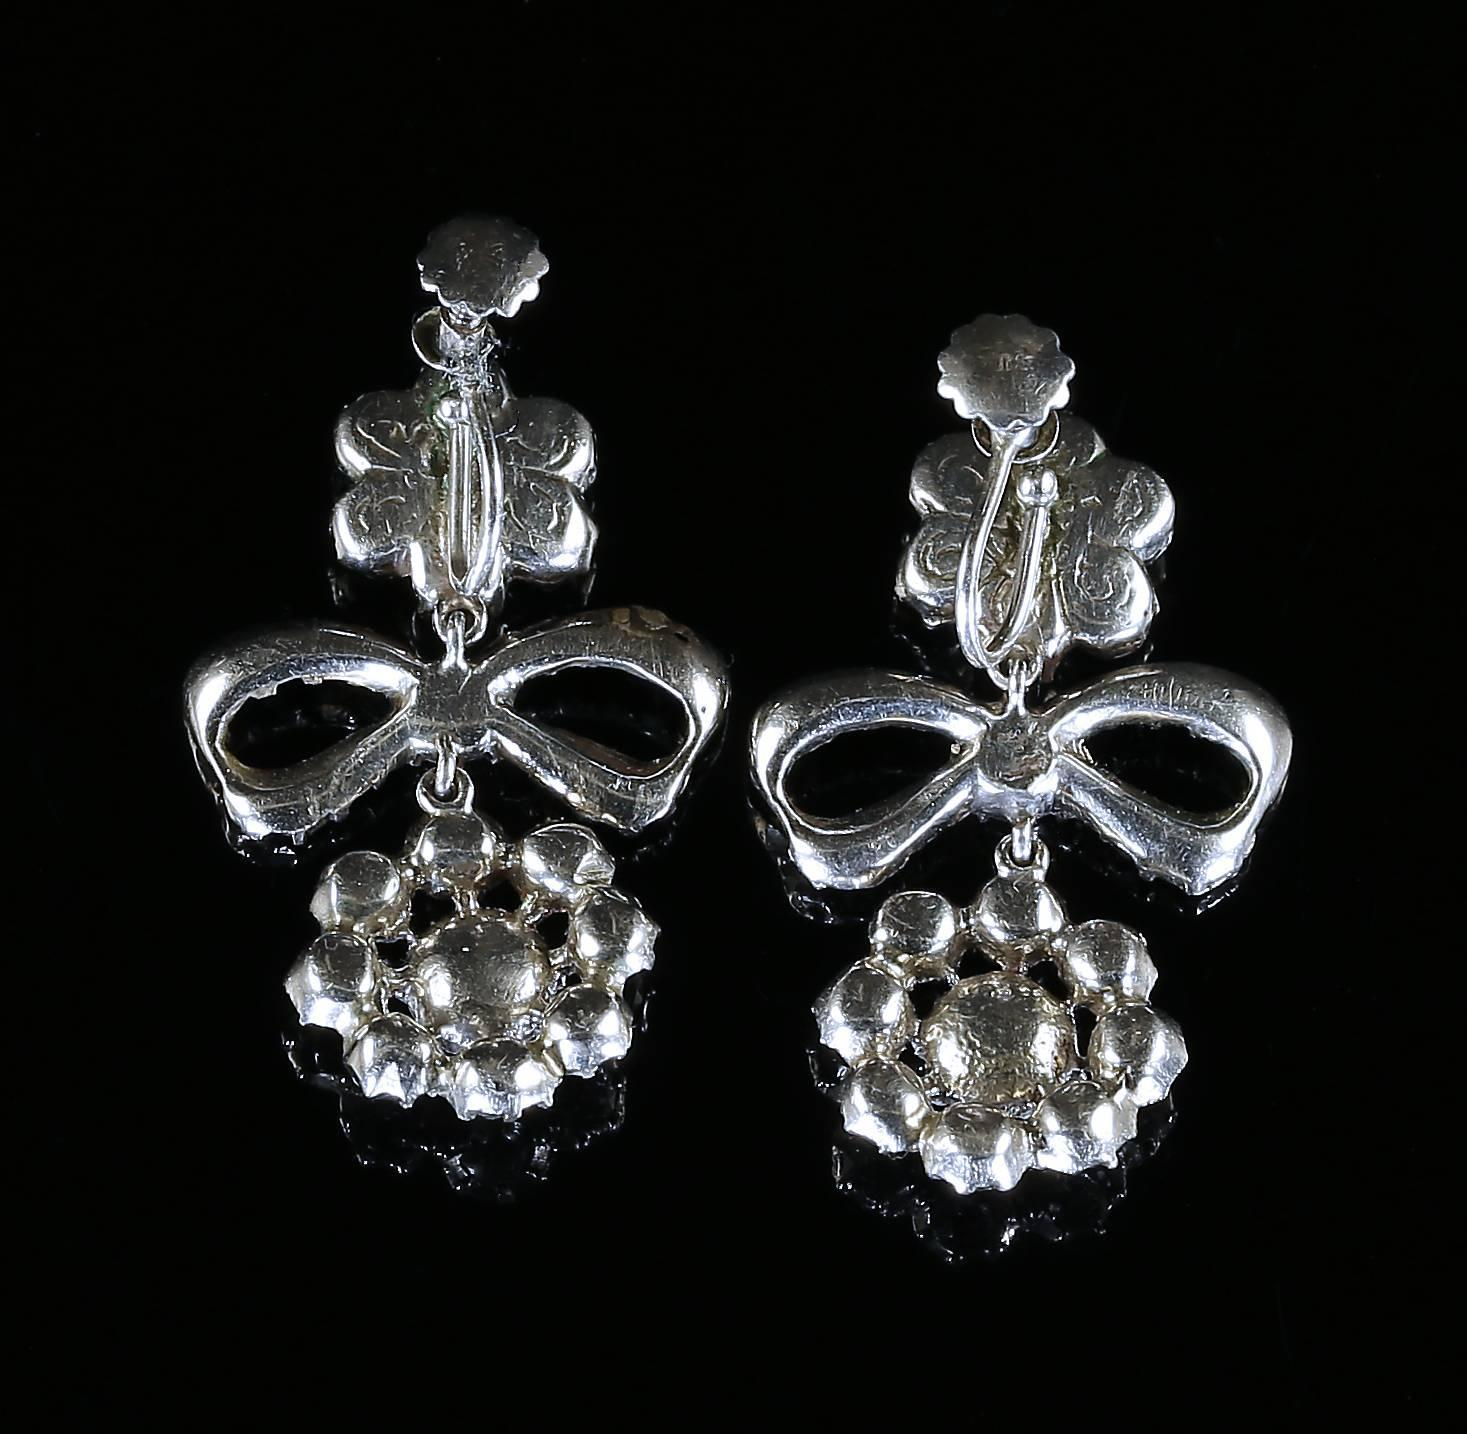 ko products the antique earrings silver nrita oxidised jewellery